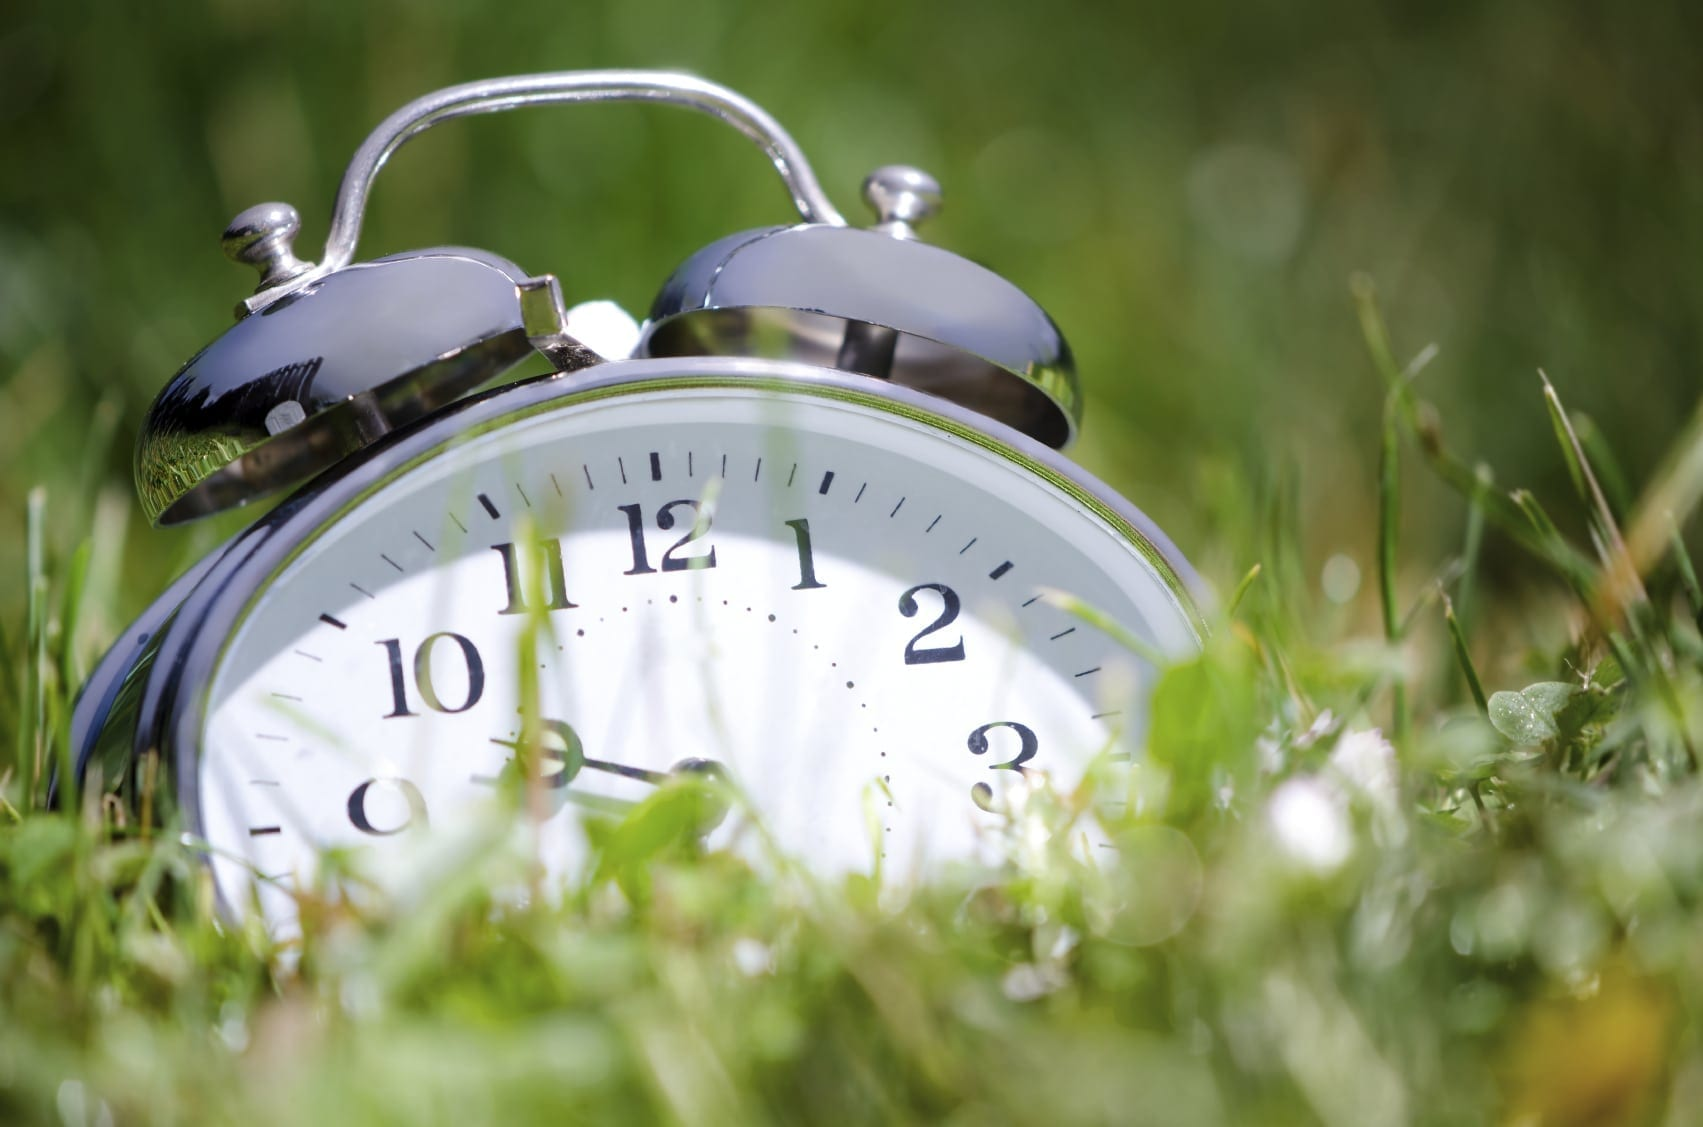 Auto Accident Attorney In Odessa Advice: Be Cautious At The End Of Daylight Savings Time